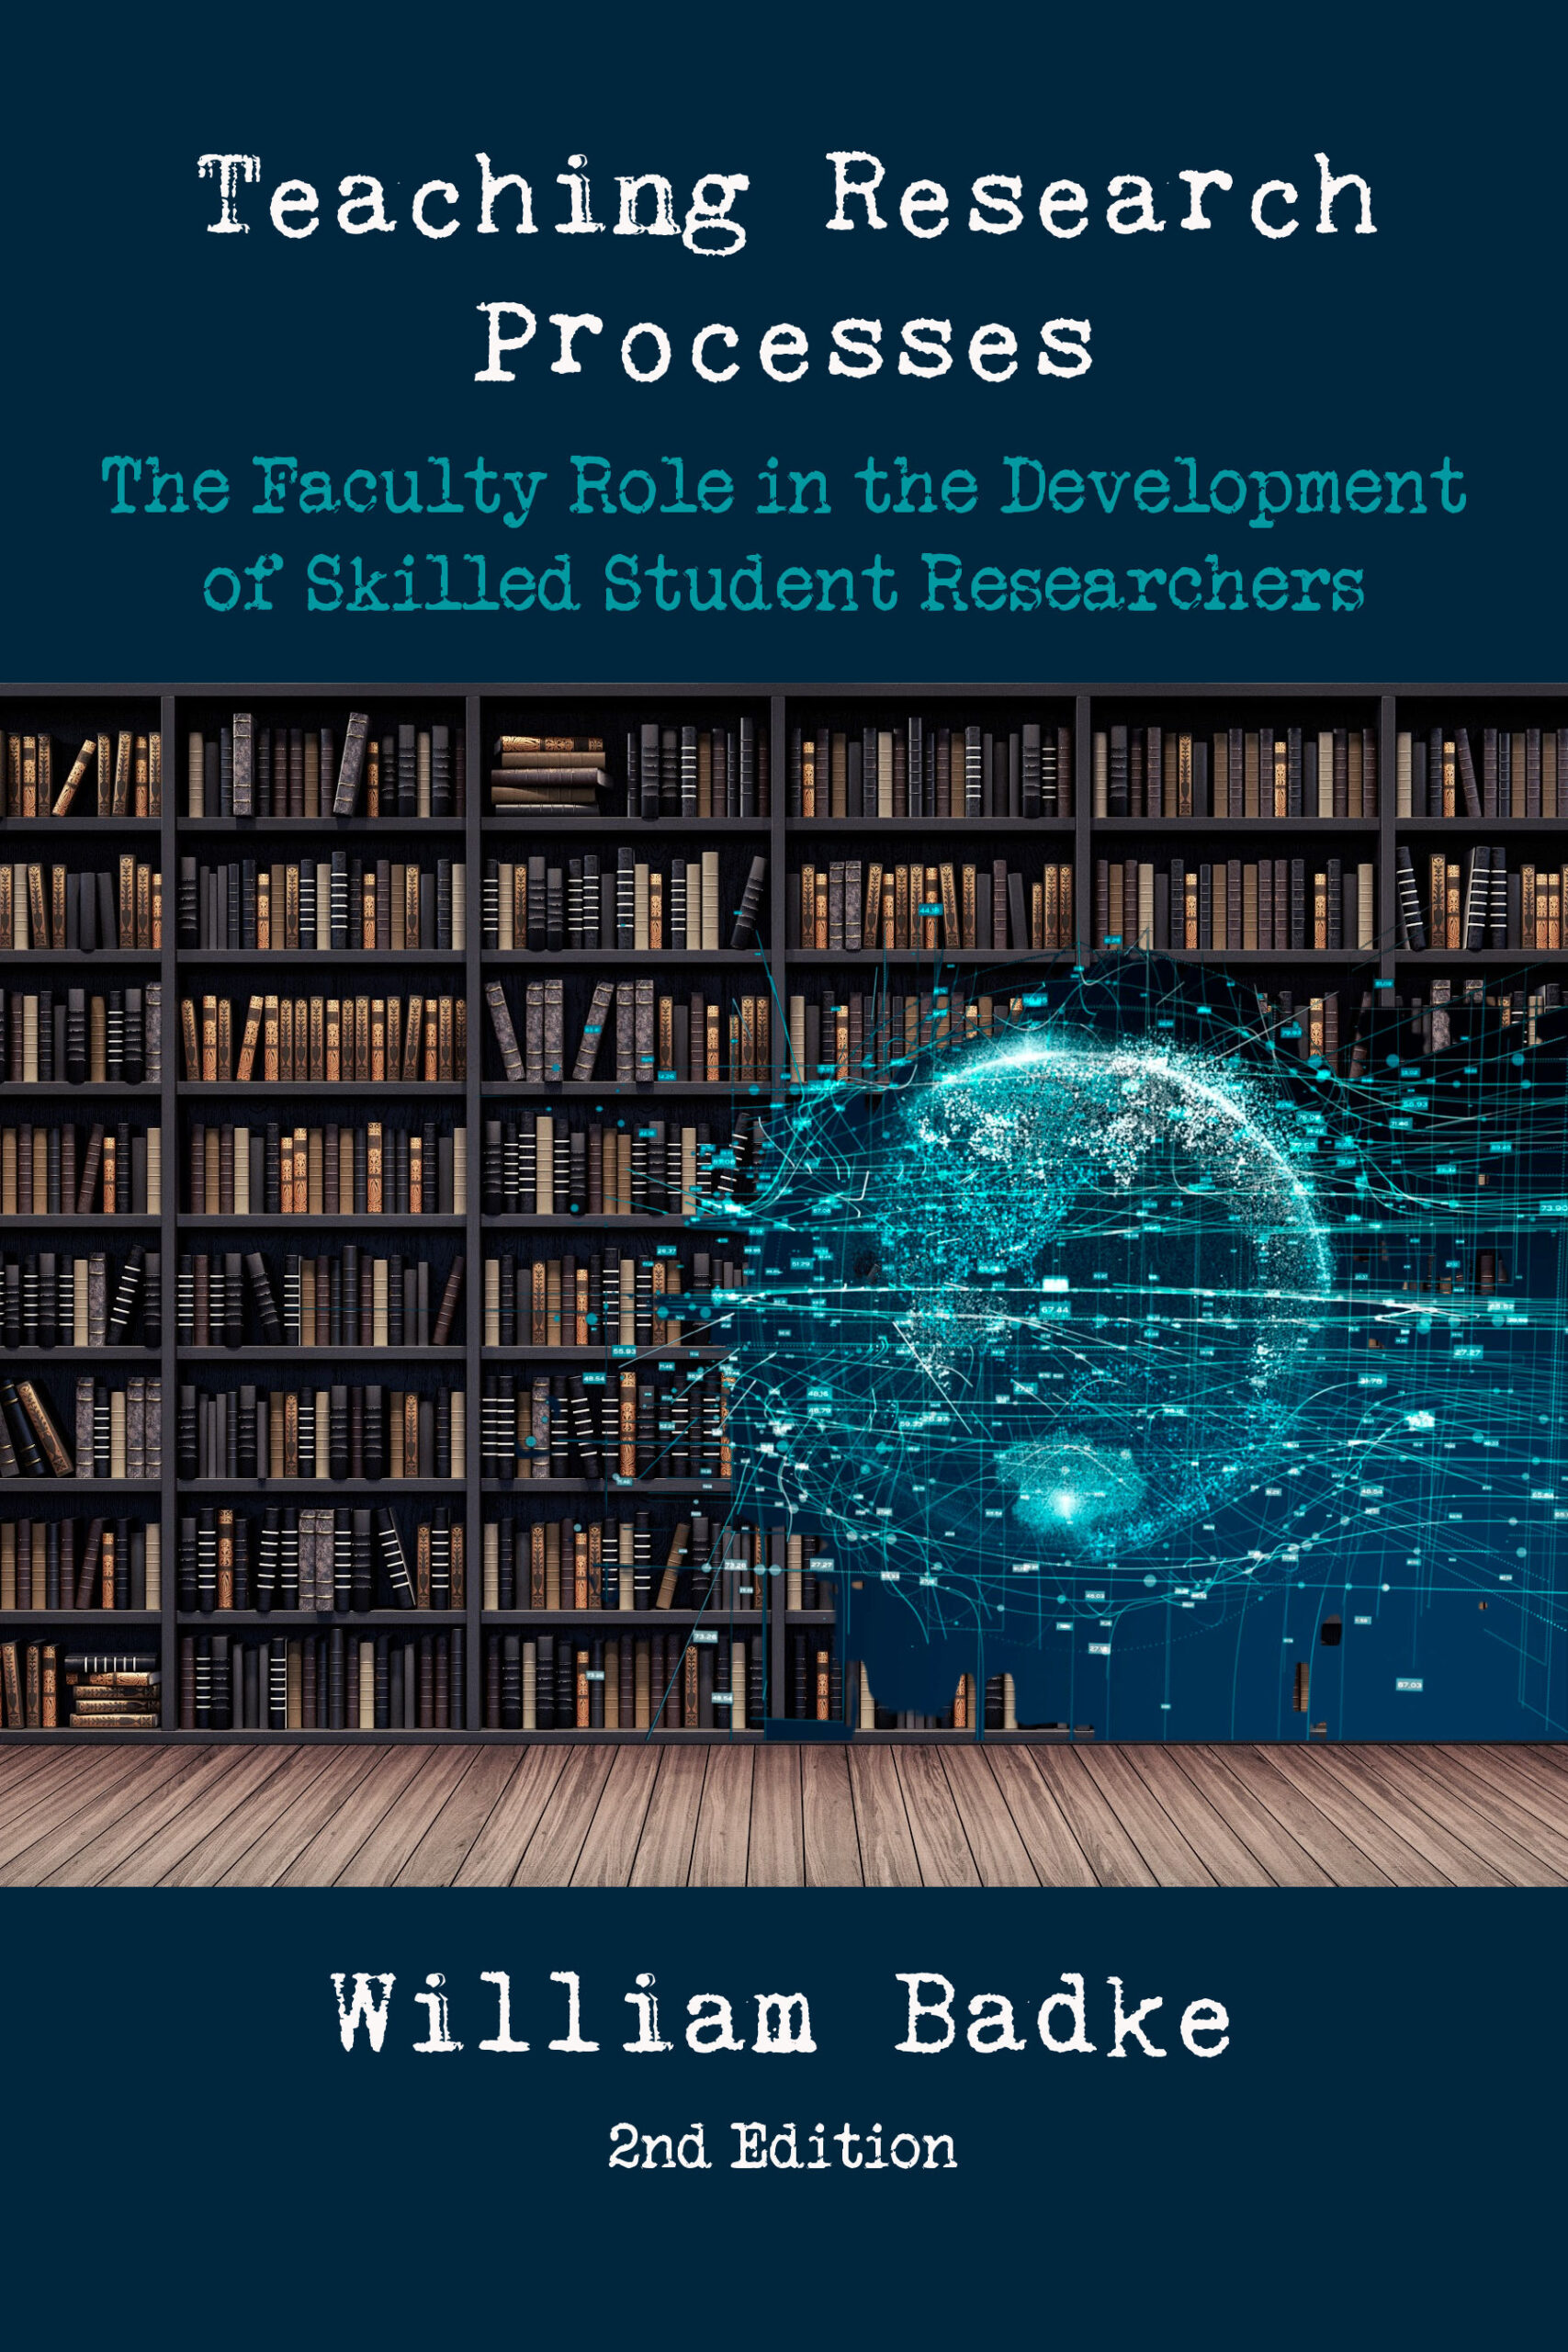 Teaching Research Processes by William Badke